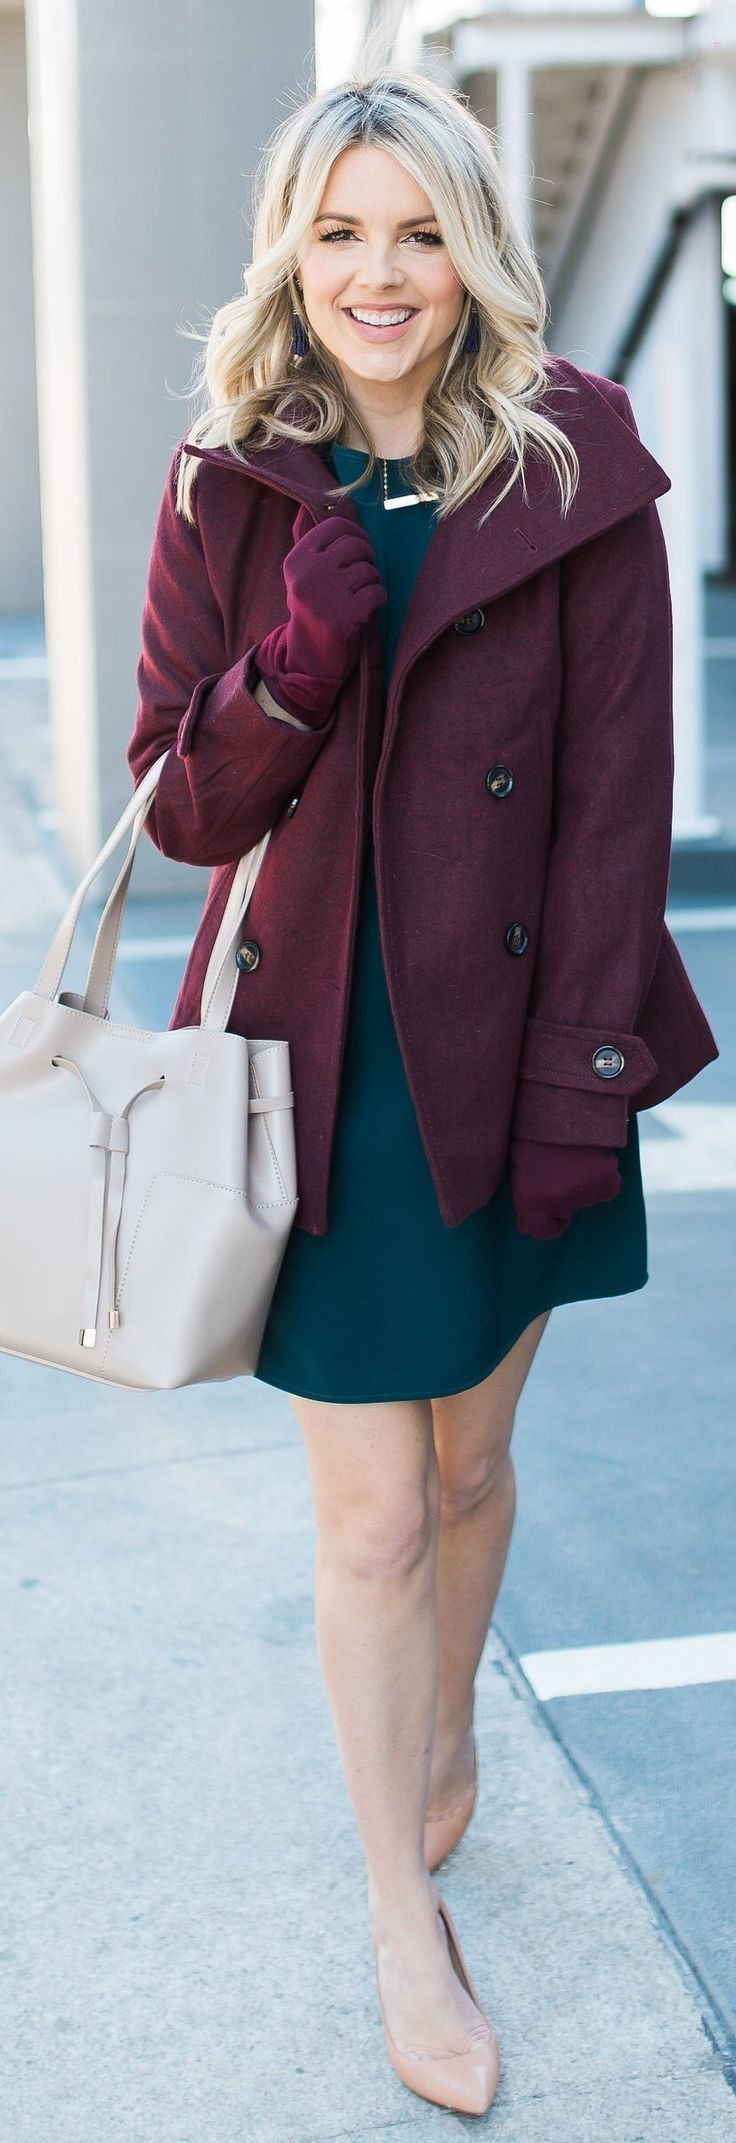 Black leather gloves cape town - Burgundy Coat Burgundy Leather Gloves Black Dress Nude Pumps Light Leather Tote